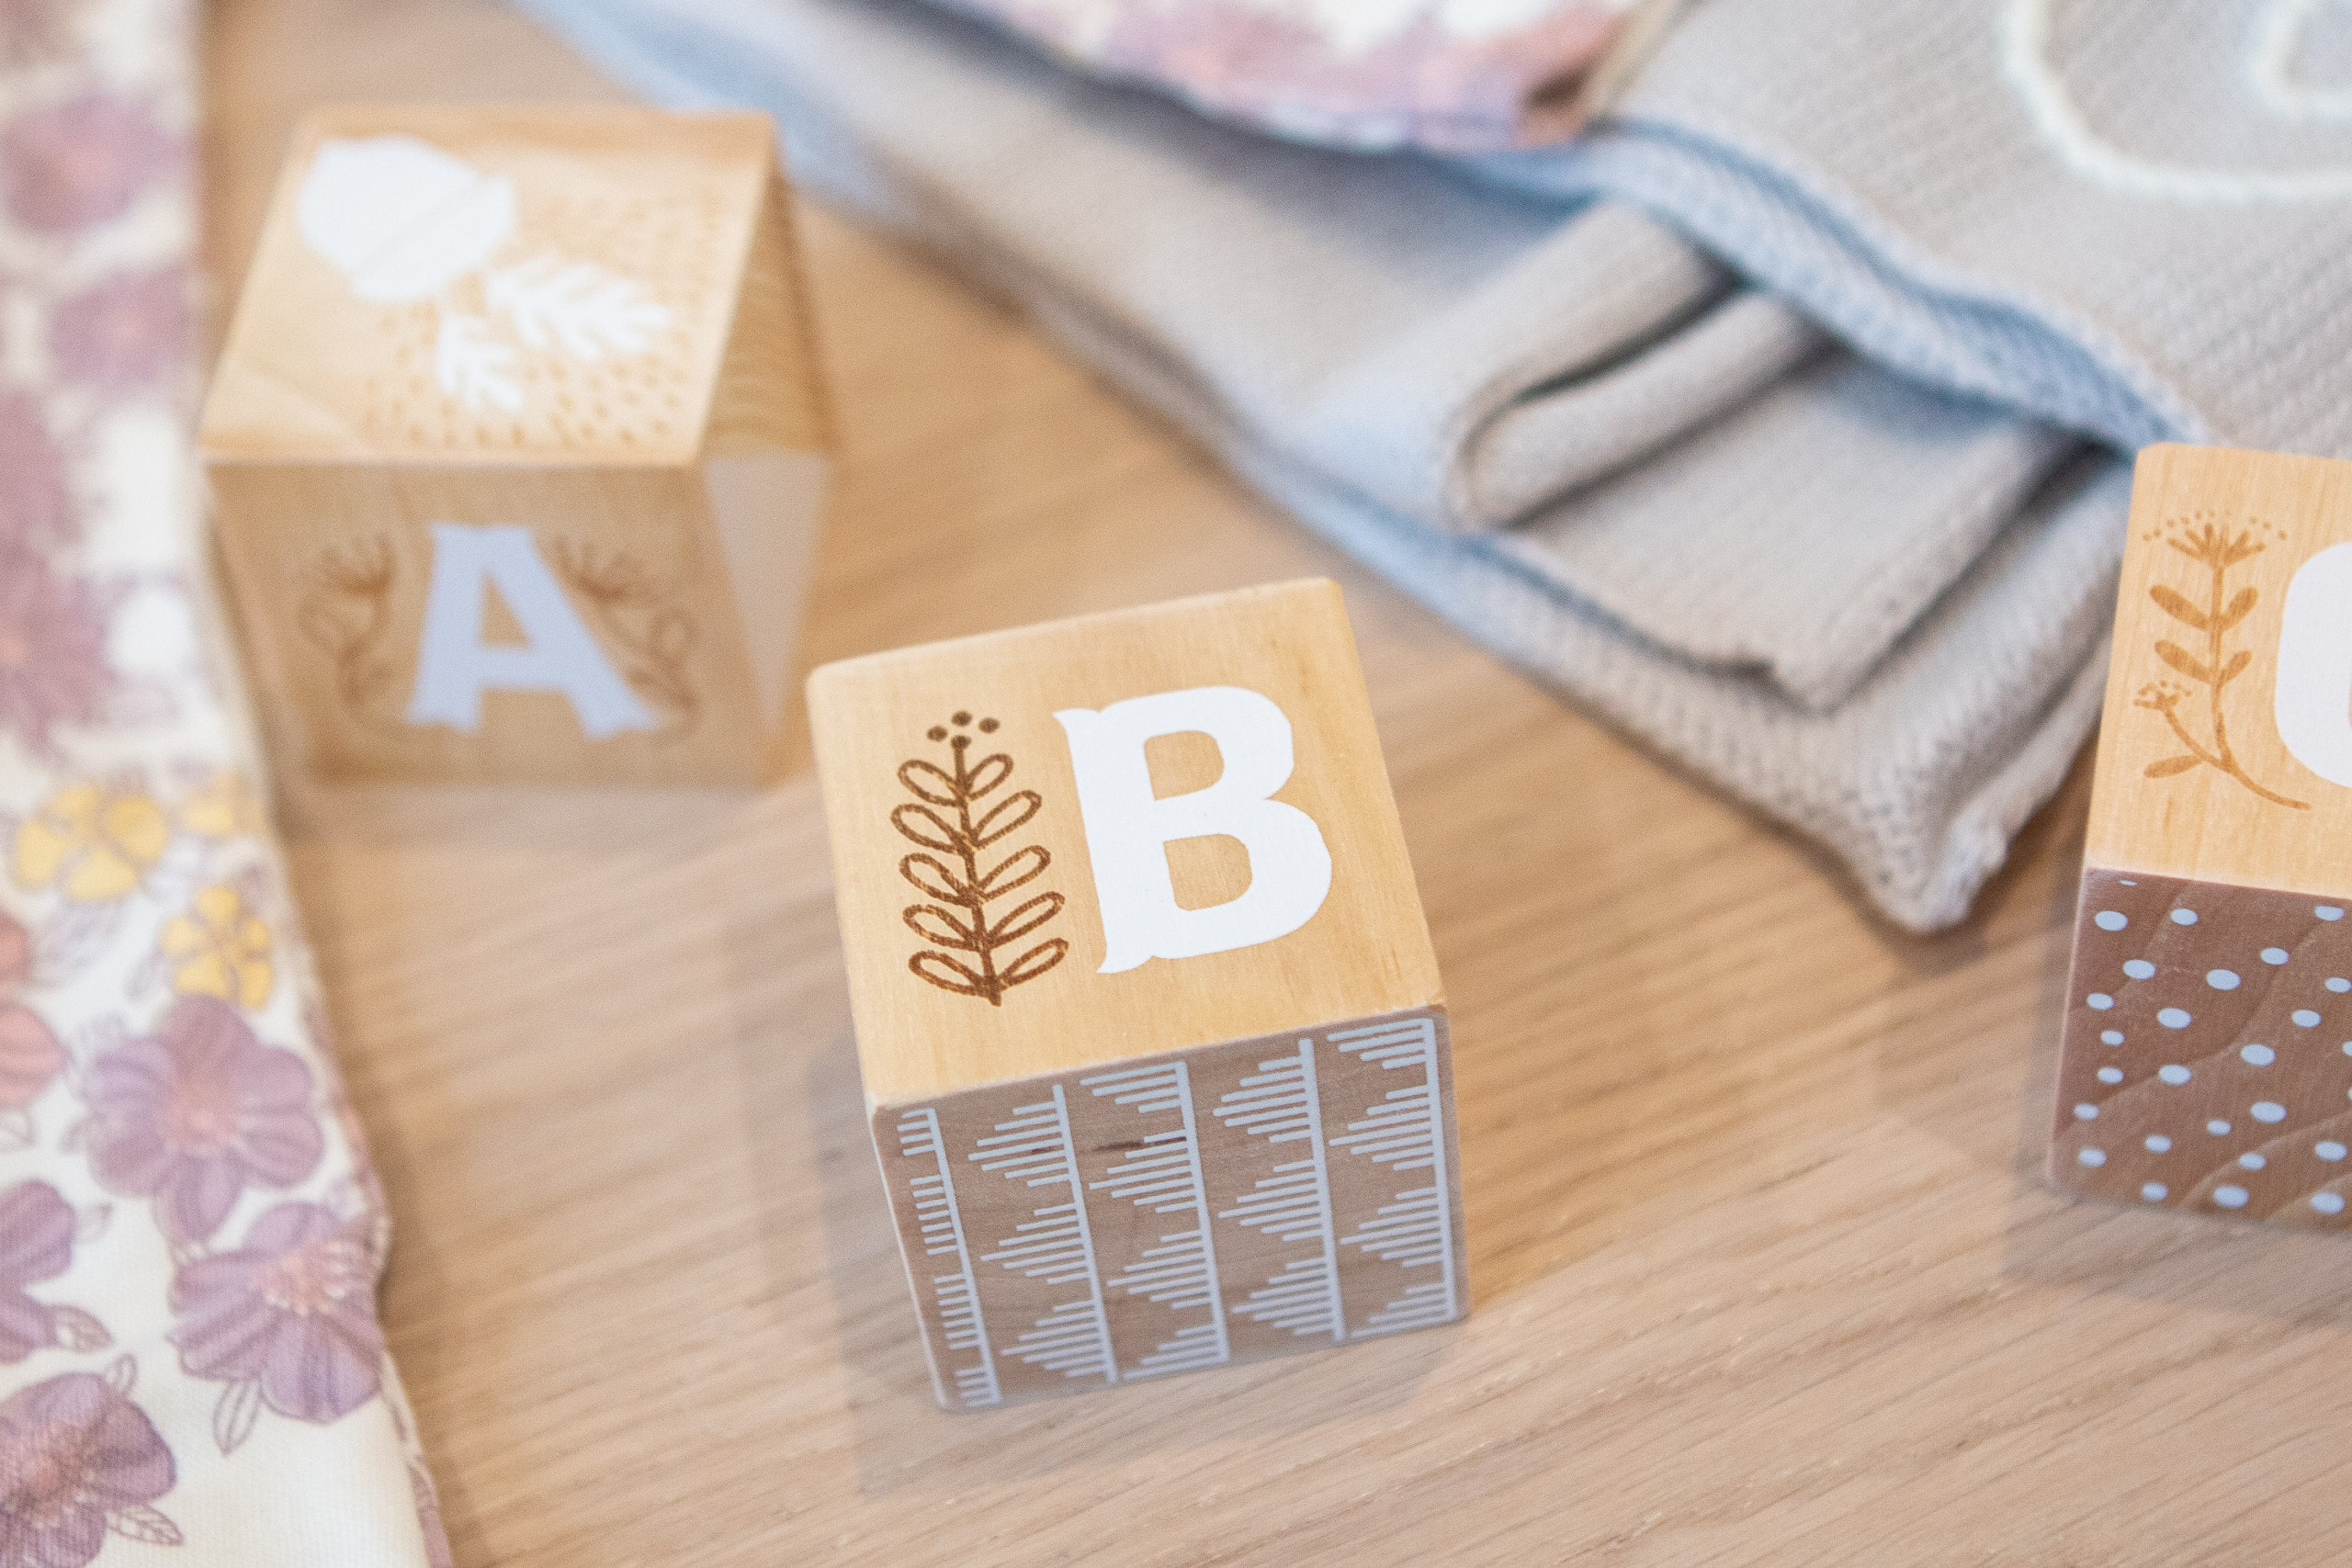 Baby registry tips add cute etched blocks for nursery decor